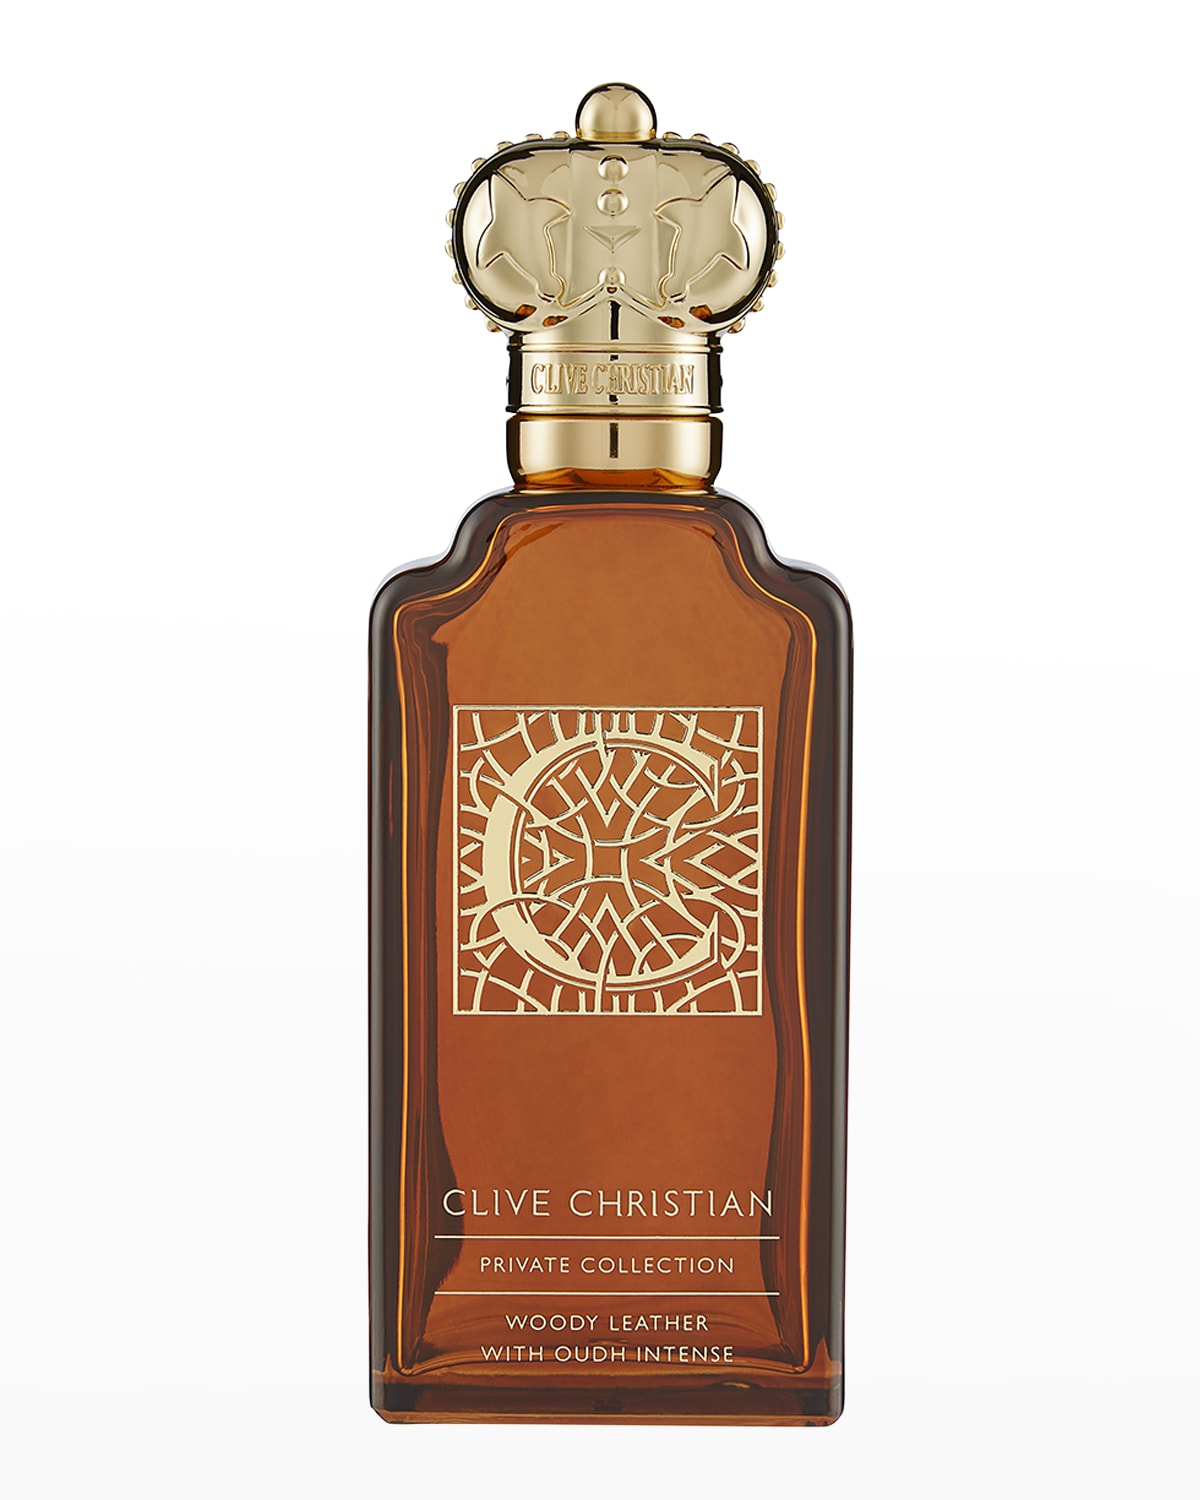 3.4 oz. Private Collection C Woody Leather Masculine